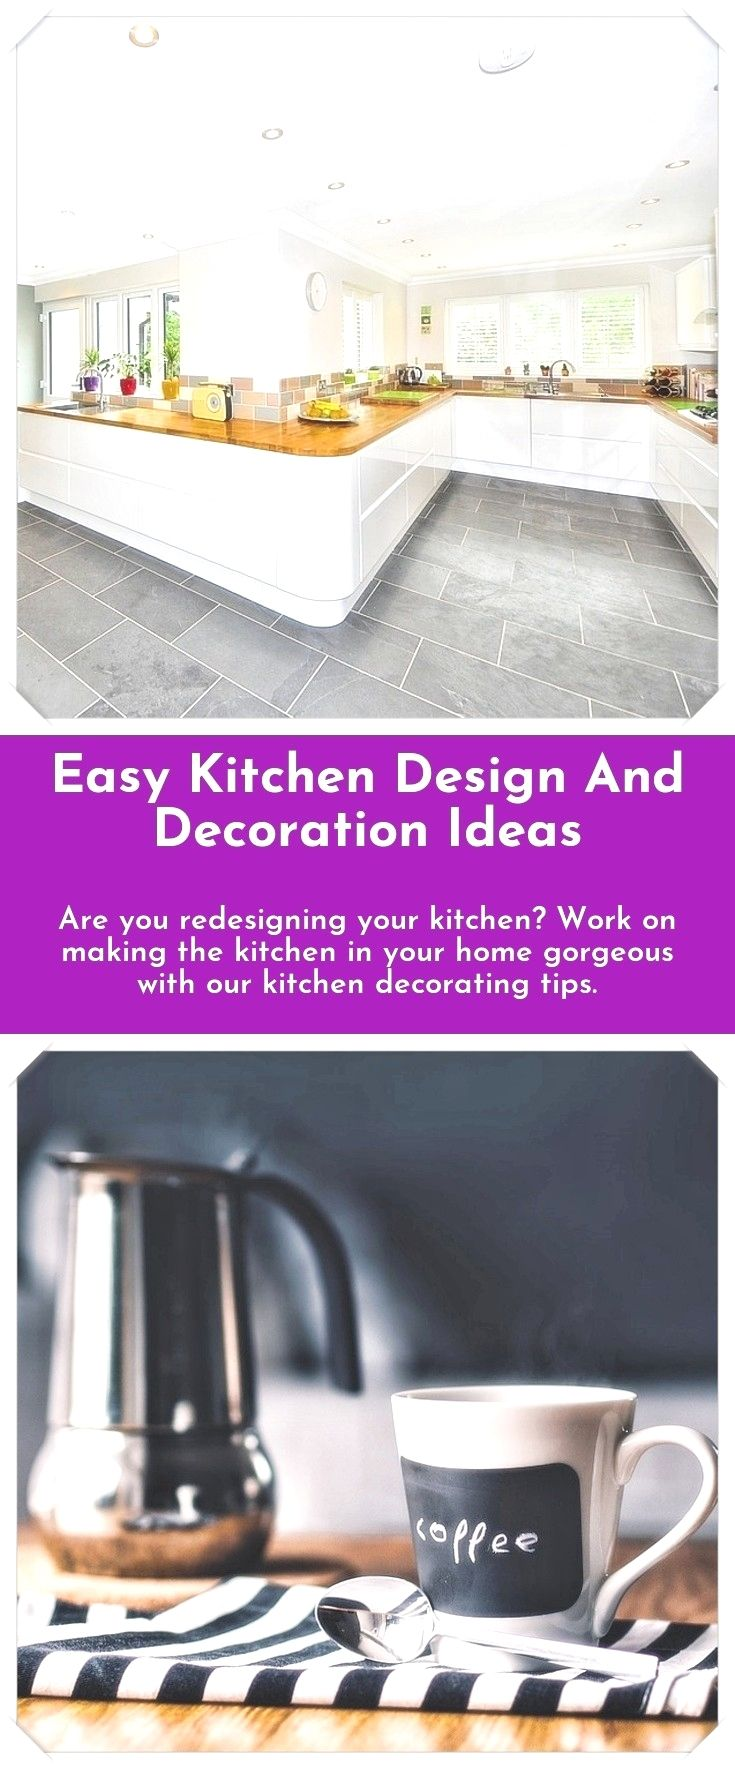 Redesigning A Kitchen Appliance Consumer Reviews Simple Decoration And Style Tips Are You Your Try One Of These Sleek Redecorating Please Click Here To Find Out